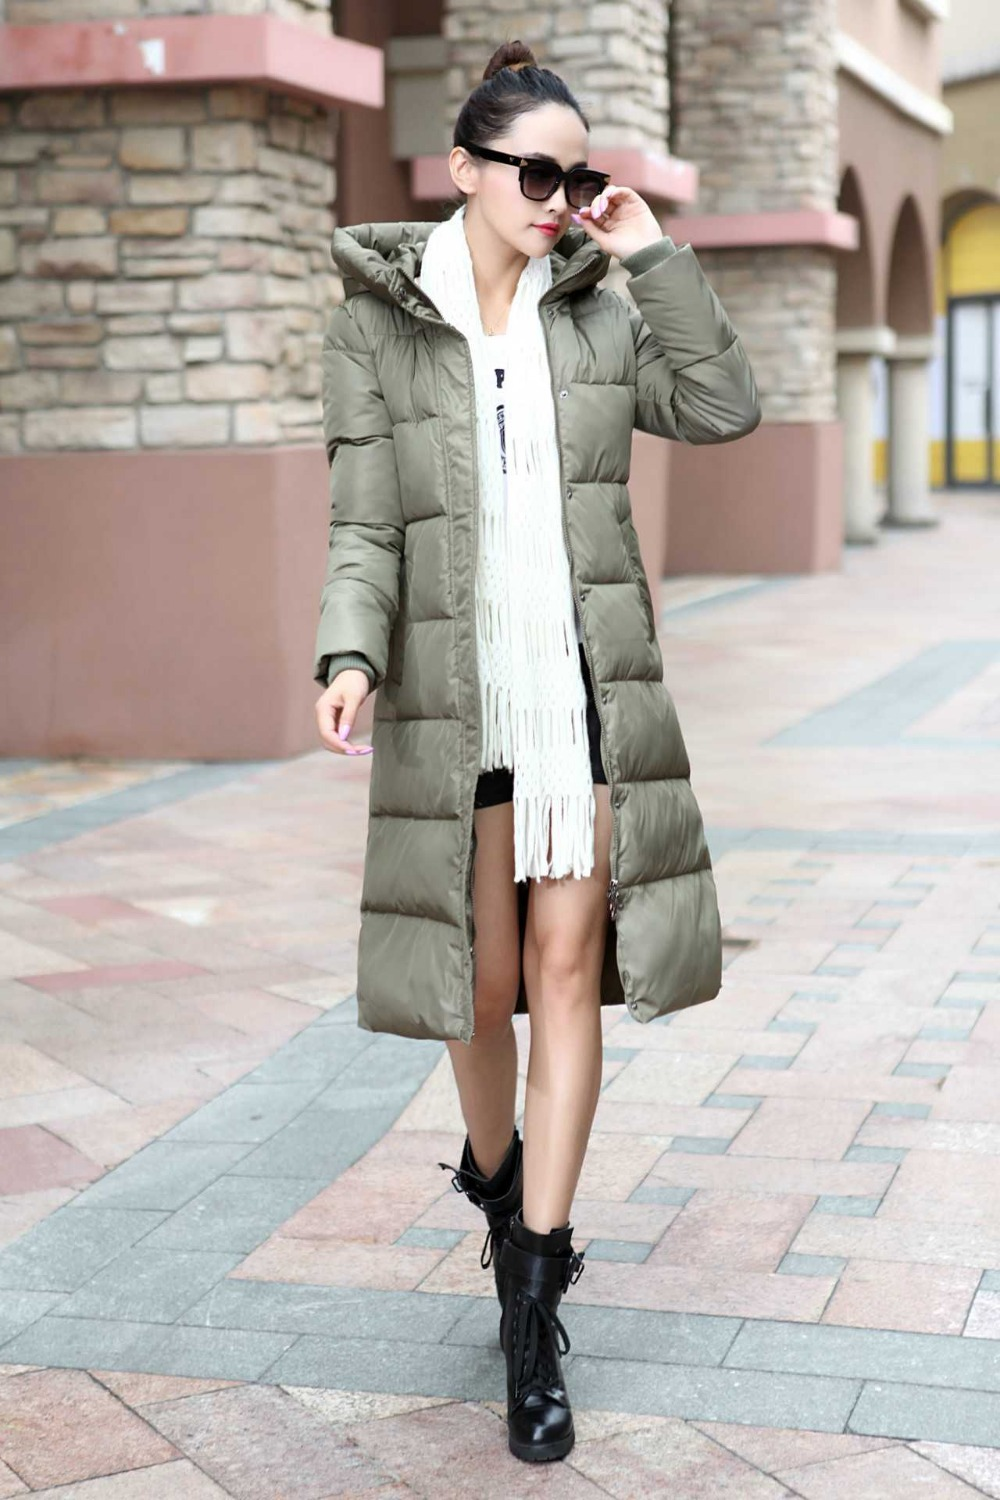 New Arrival Fashion Korean Winter Thickening Camouflage Long Sleeves Zipper And Covered Button Down Jacket Women Coat H4329Одежда и ак�е��уары<br><br><br>Aliexpress